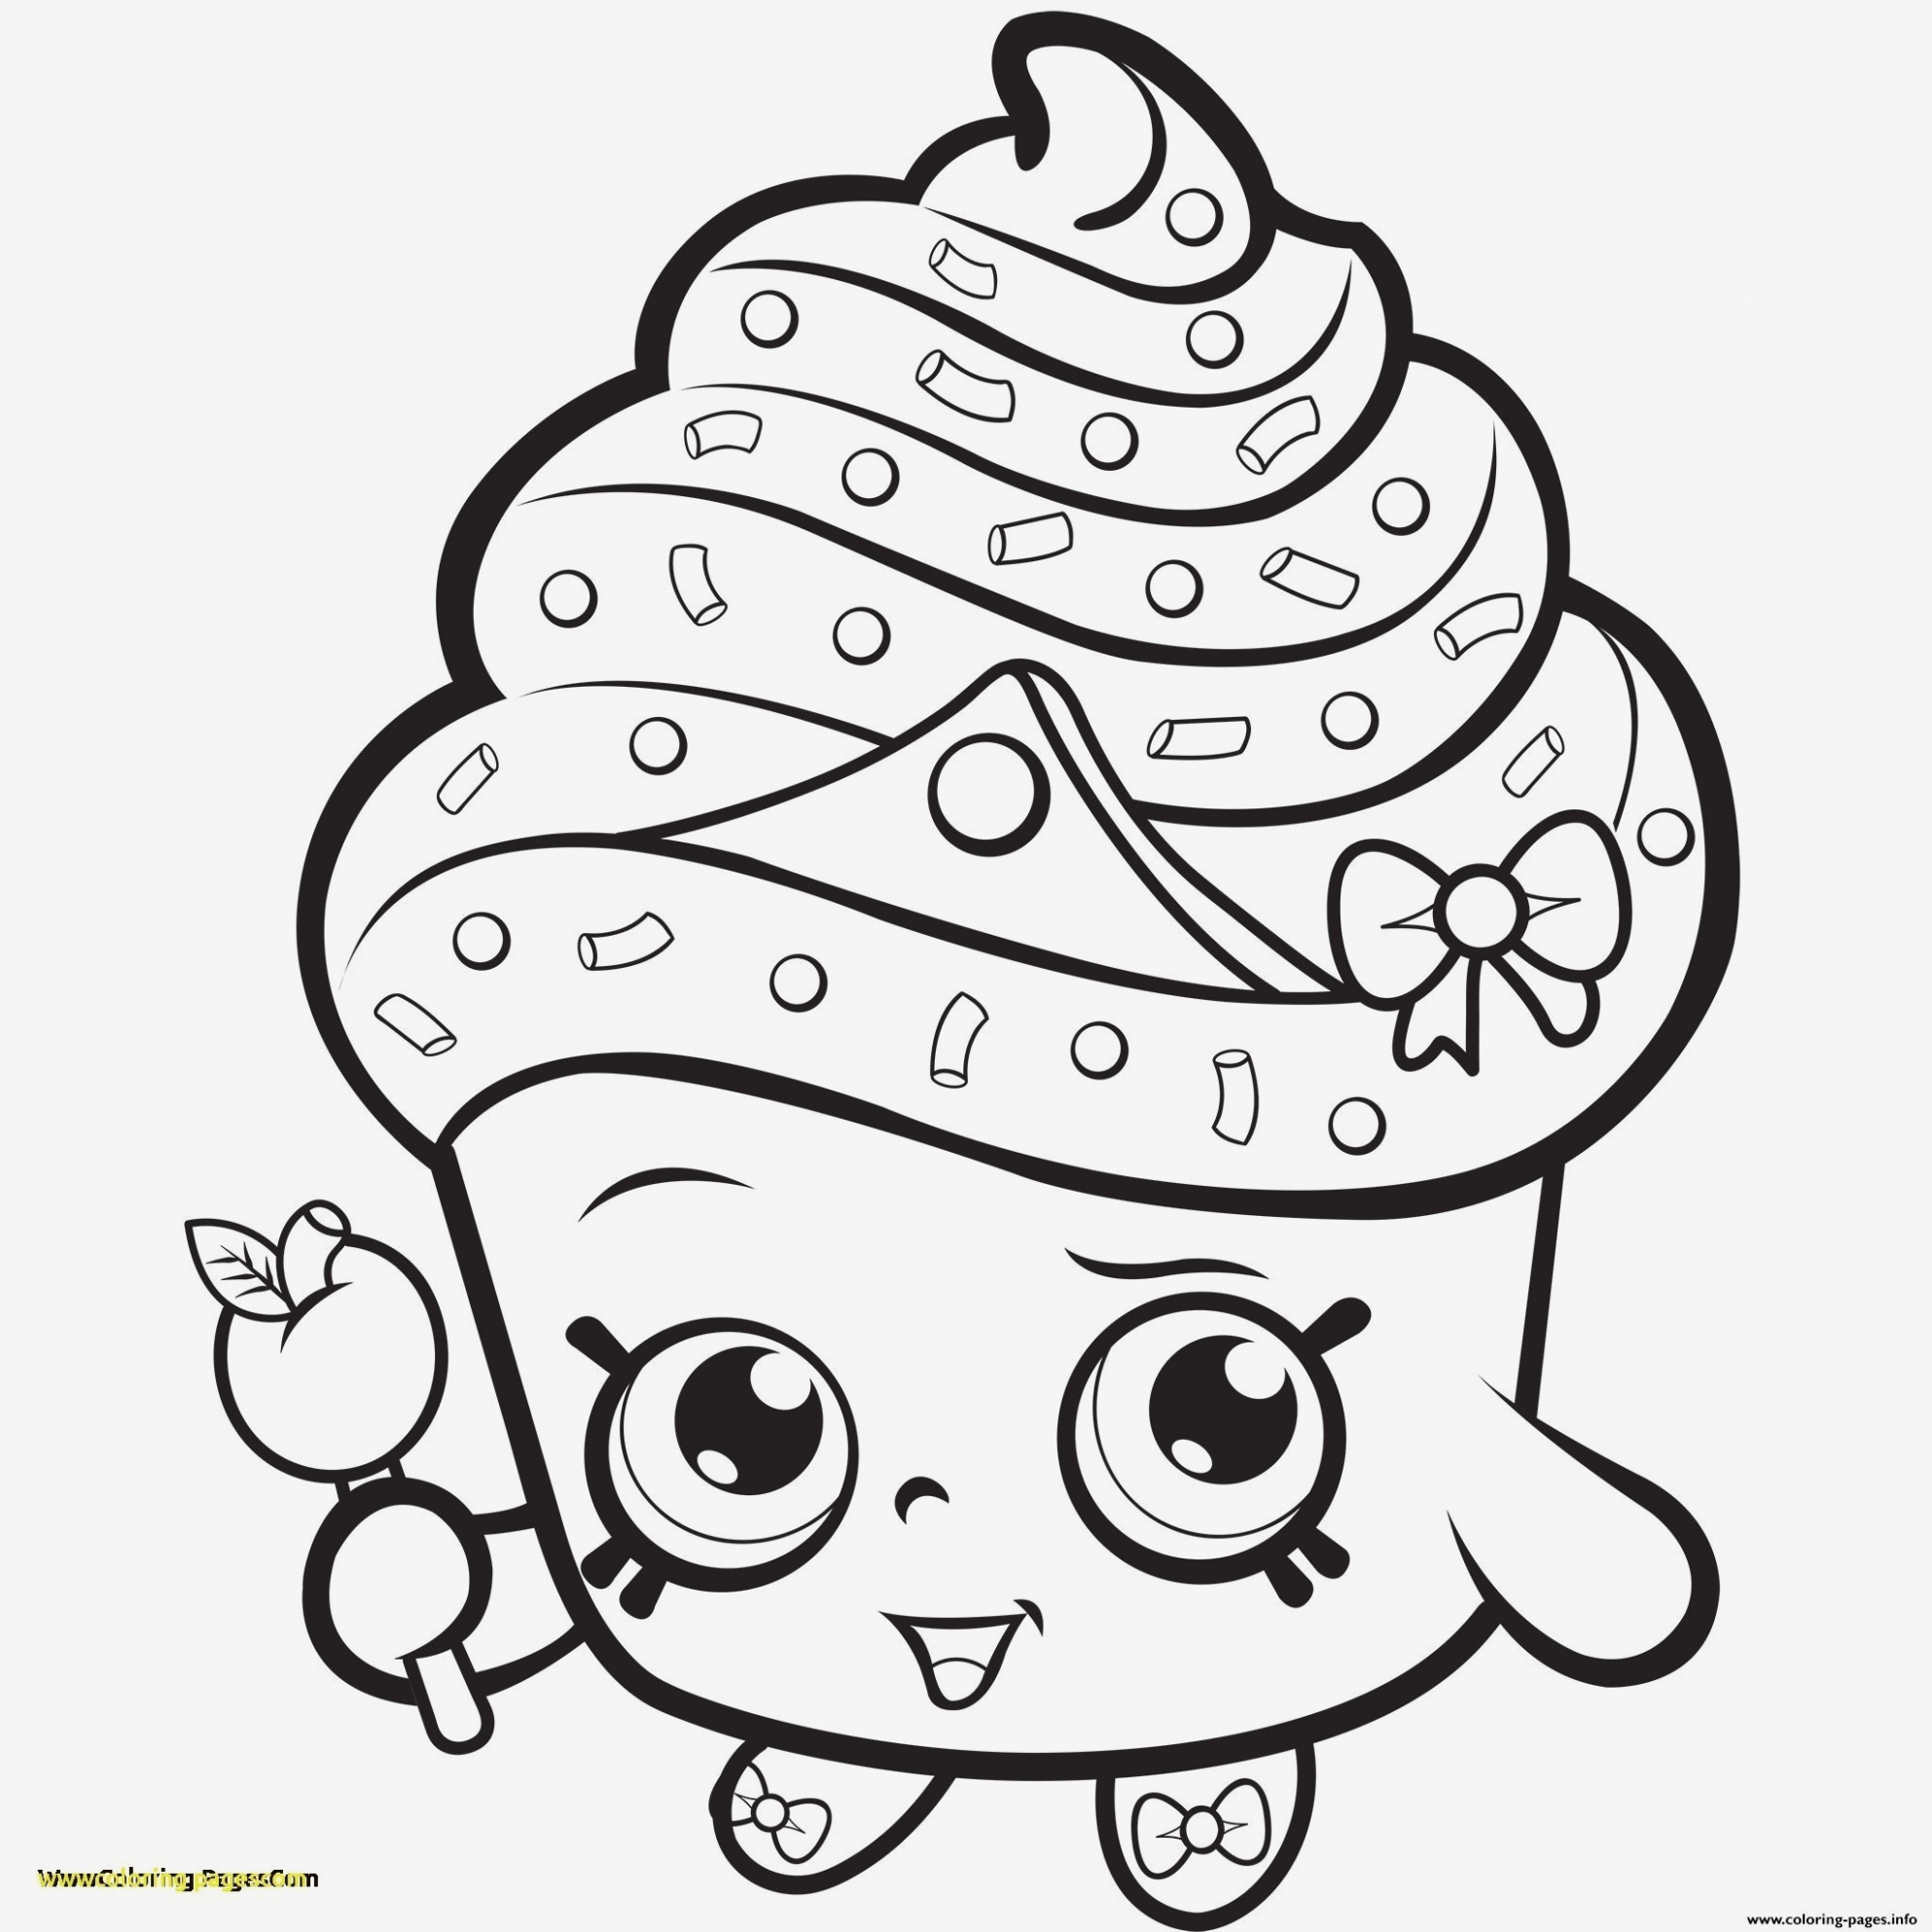 Alphabet Coloring Pages Az Easy and Fun Collection Of Coloring Pages ..